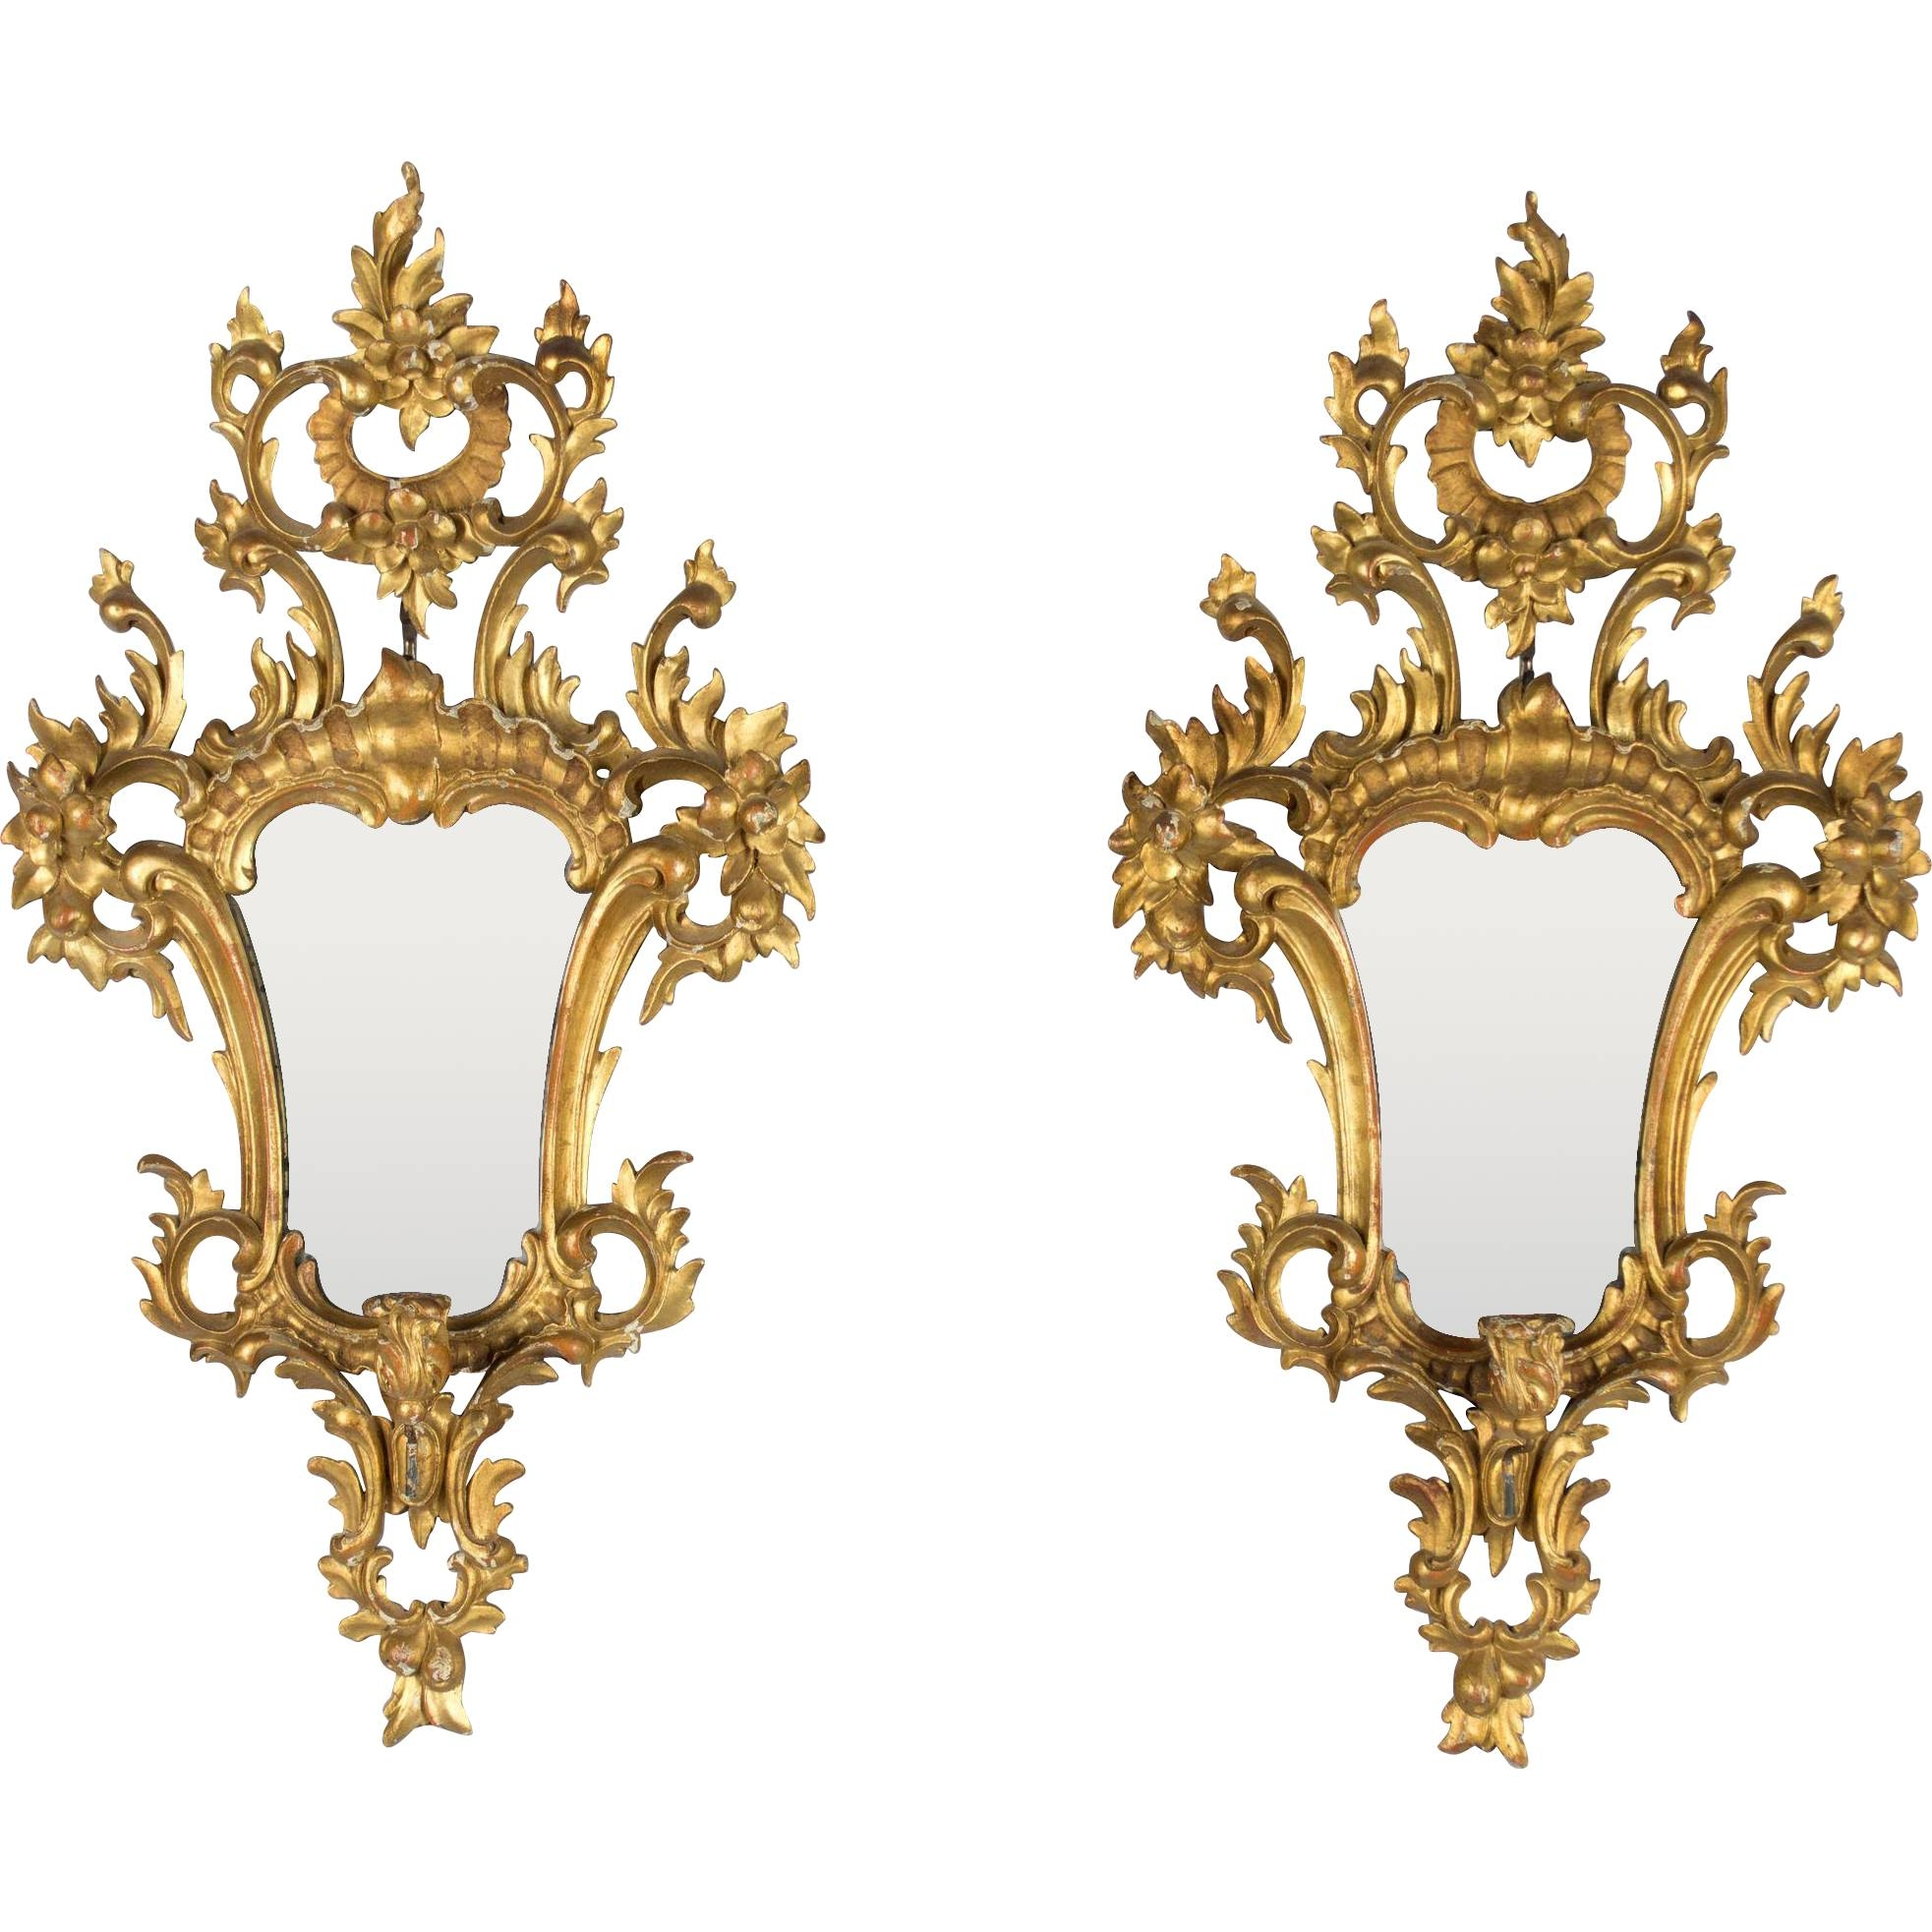 Pair Of Italian Rococo Style Mirrors With Candleholders From throughout Rococo Style Mirrors (Image 7 of 15)